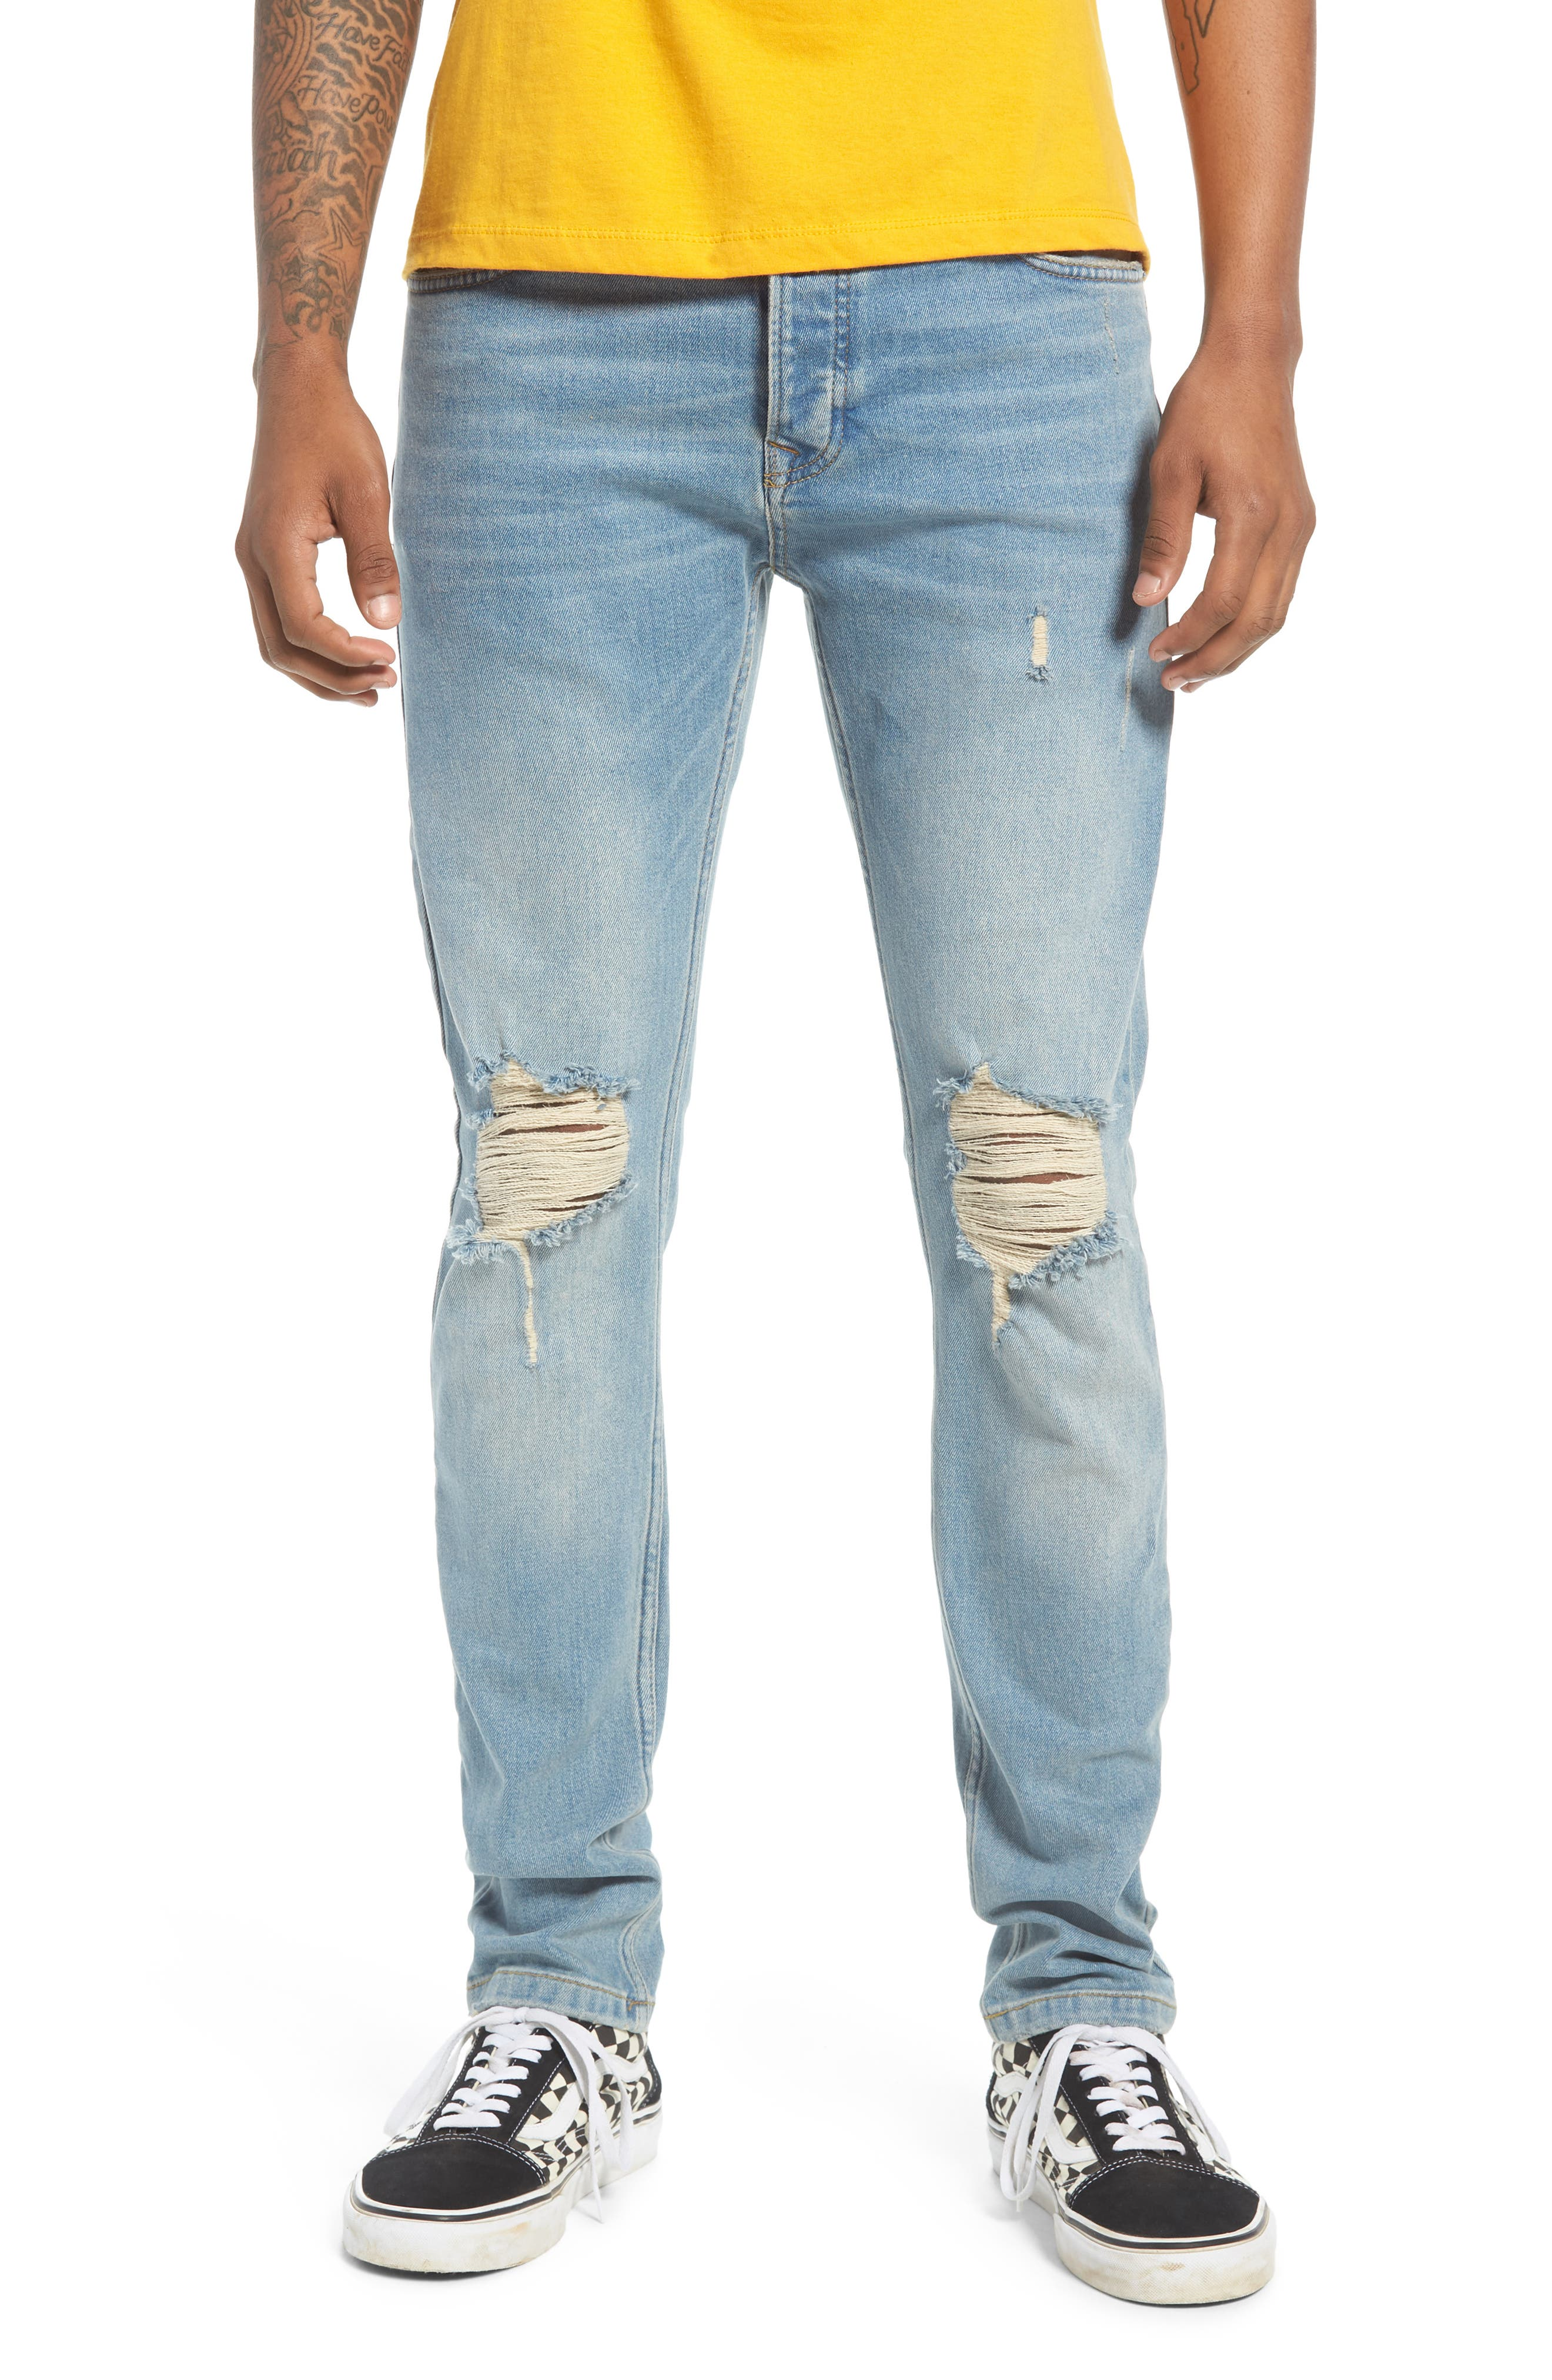 TOPMAN, Ripped Stretch Skinny Jeans, Main thumbnail 1, color, LIGHT WASH DENIM